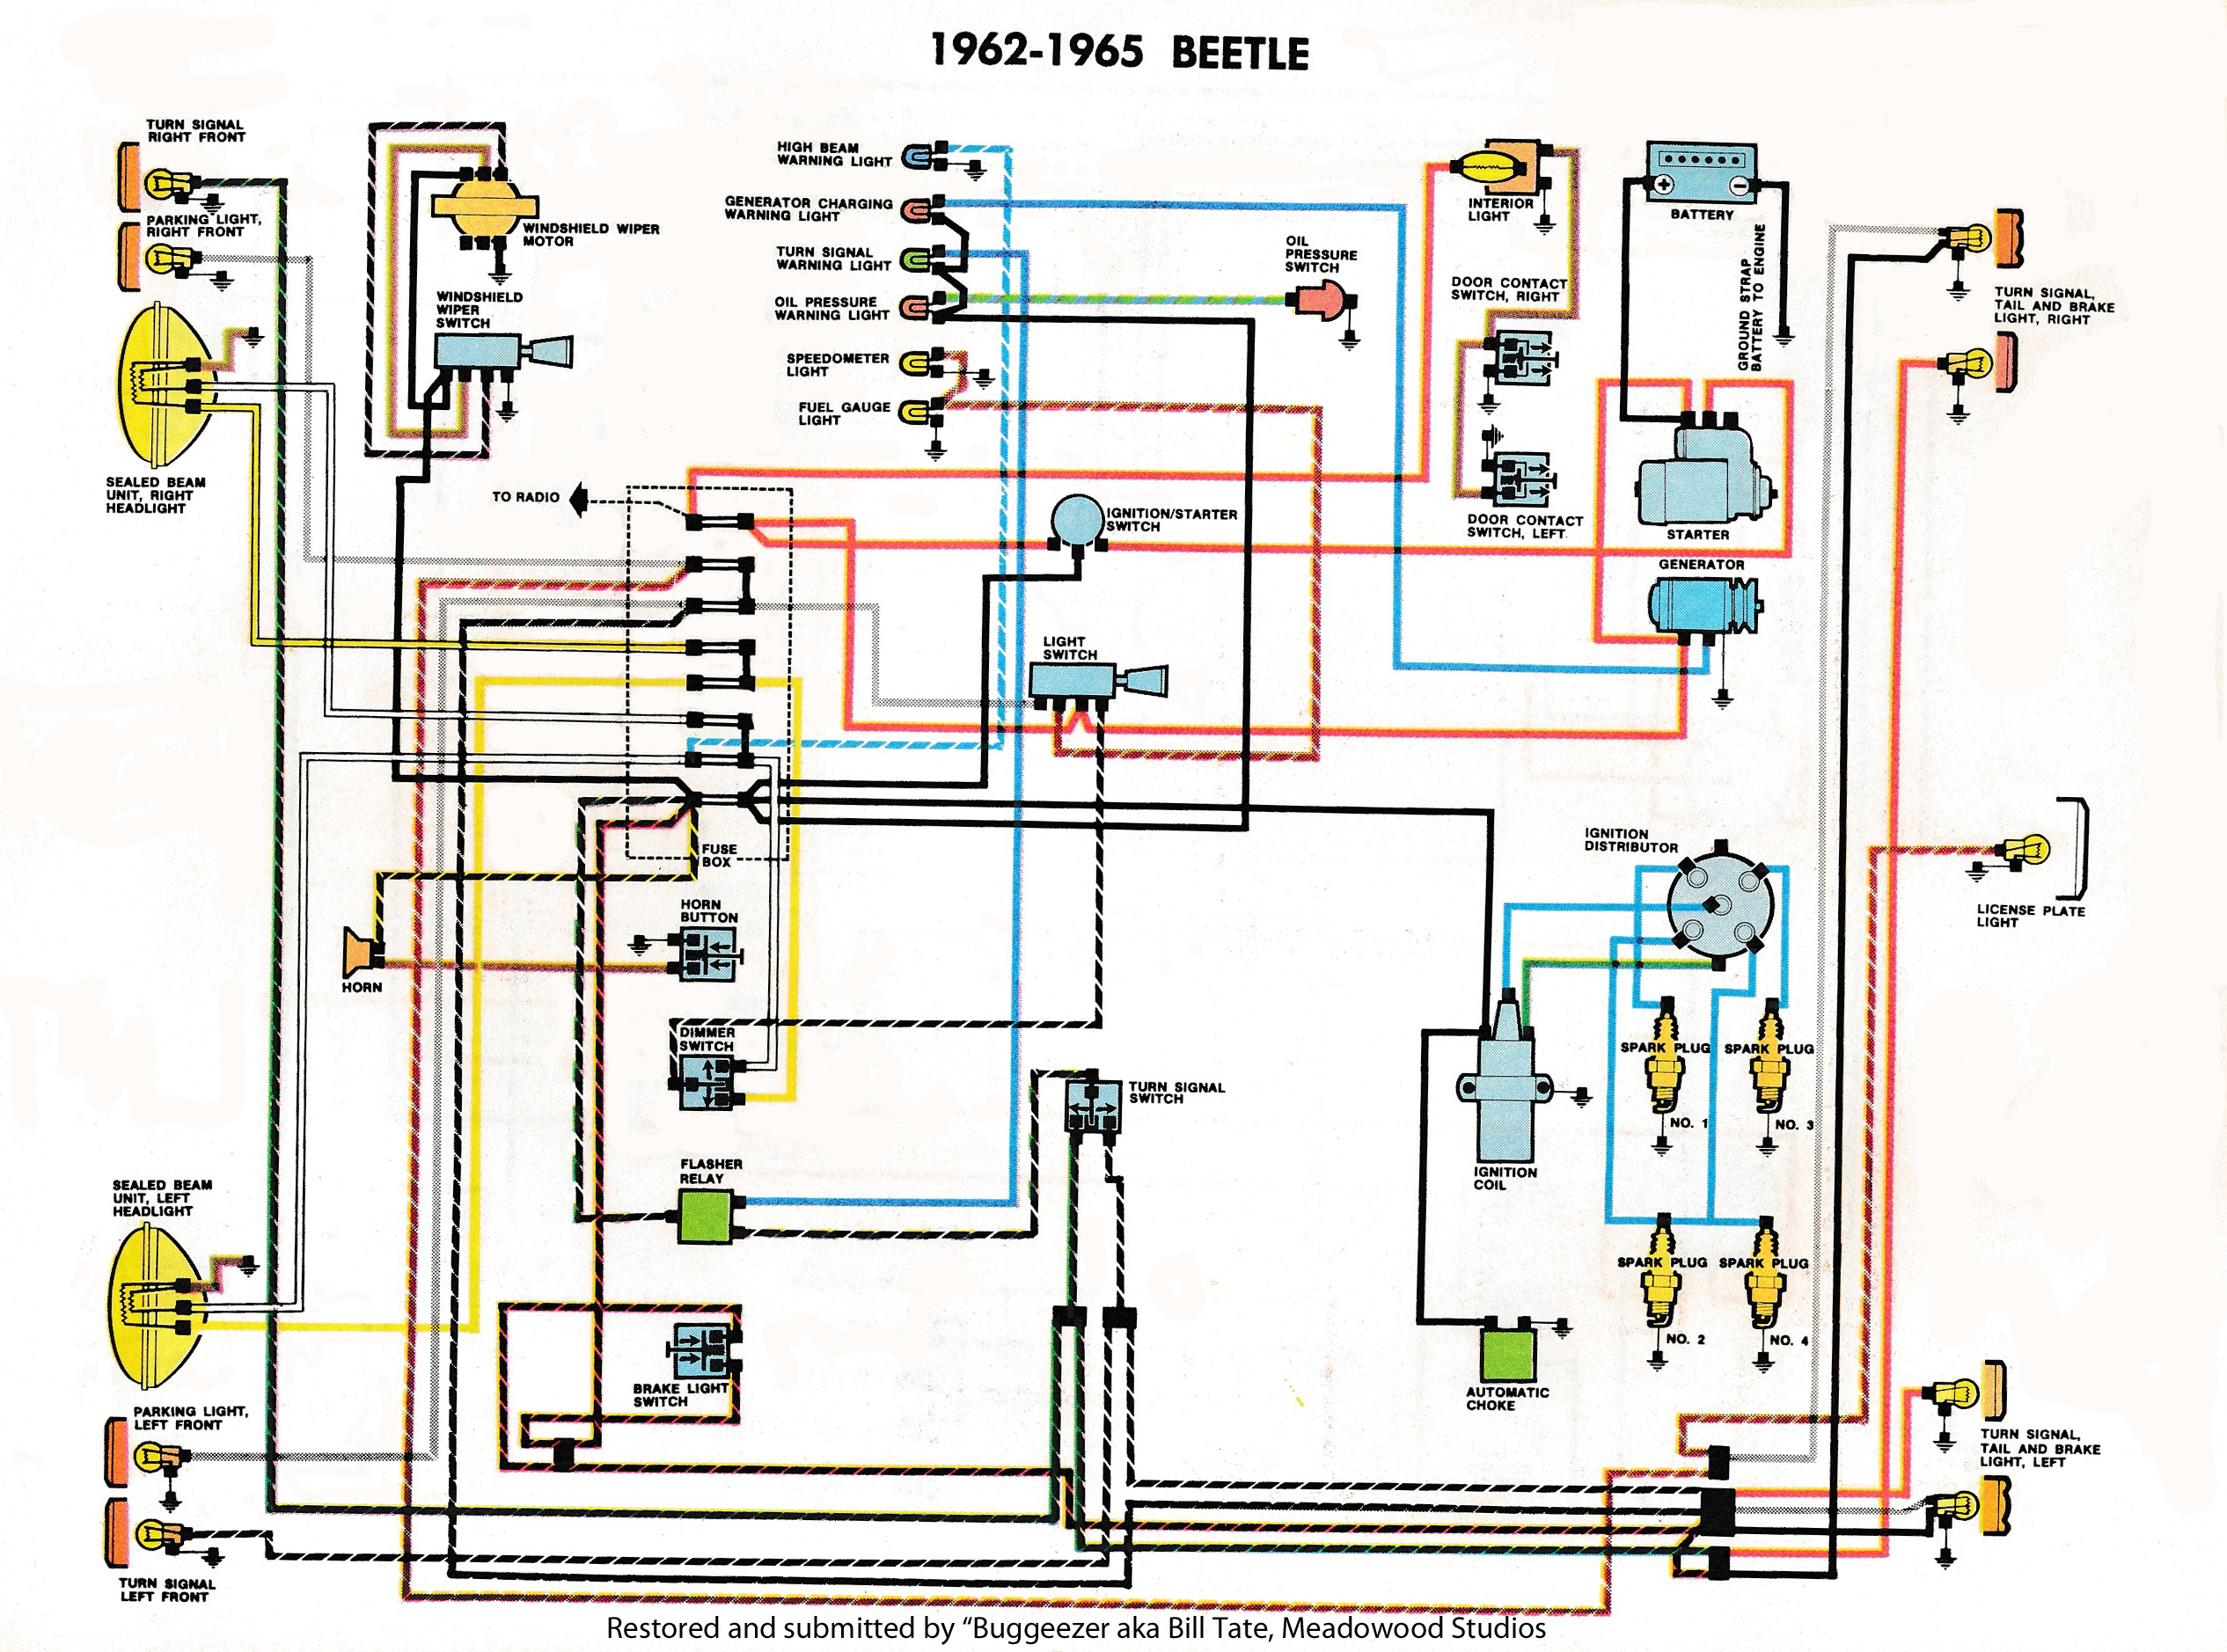 1969 Chevelle Reverse Light Wiring Smart Diagrams Diagram Thesamba Com Type 1 Malibu Vent